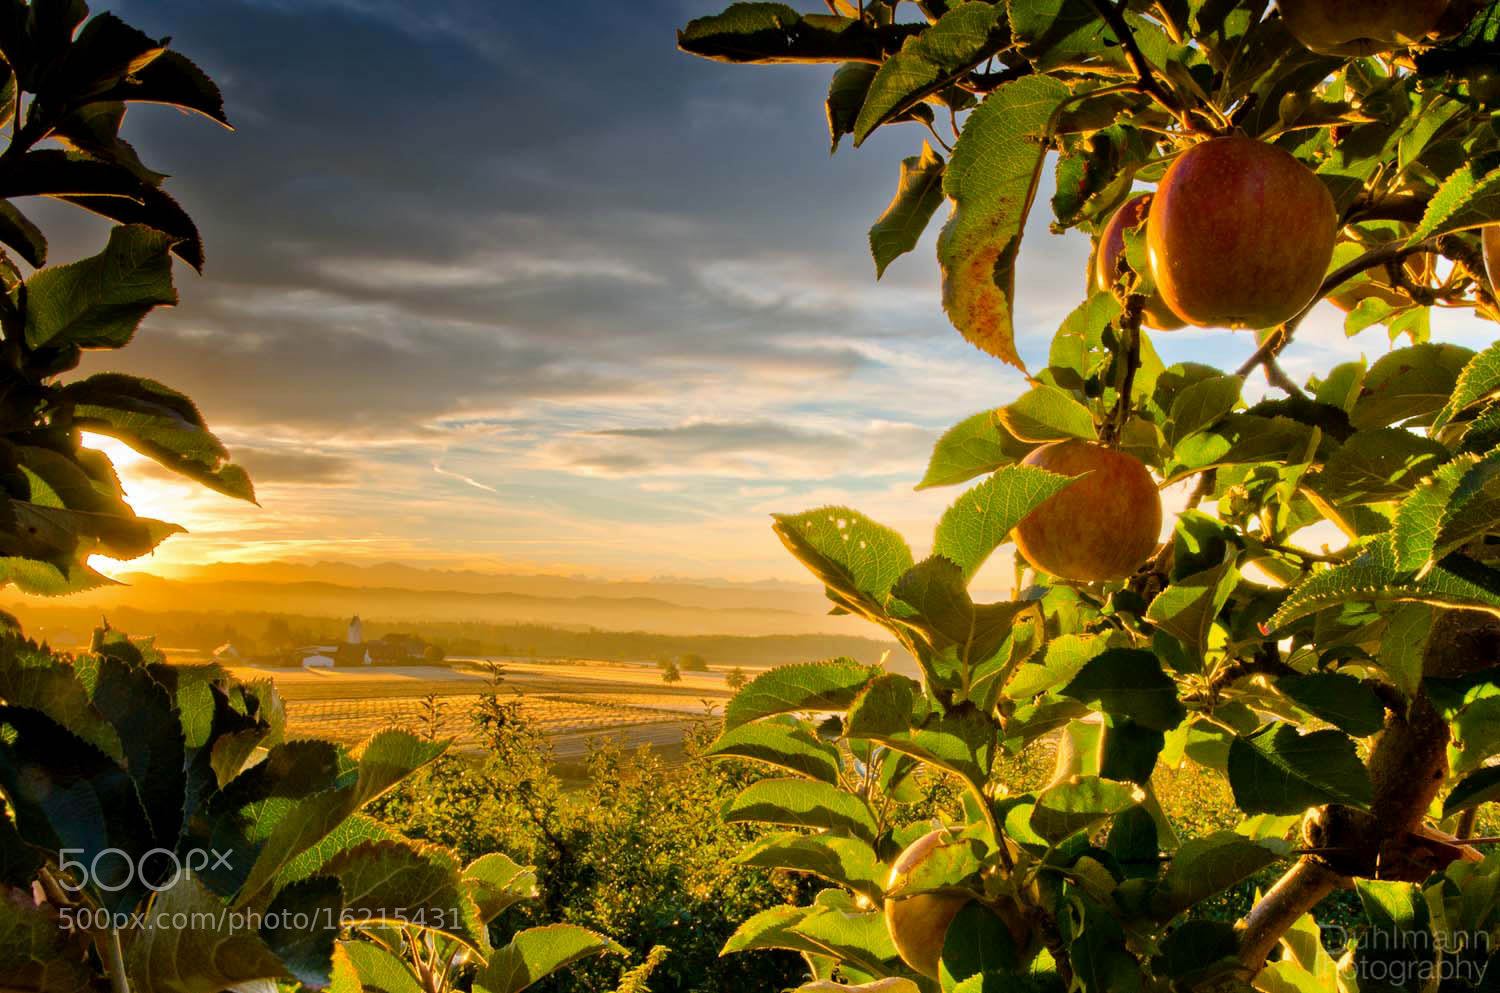 Photograph Fruity Landscape by Claus Puhlmann on 500px